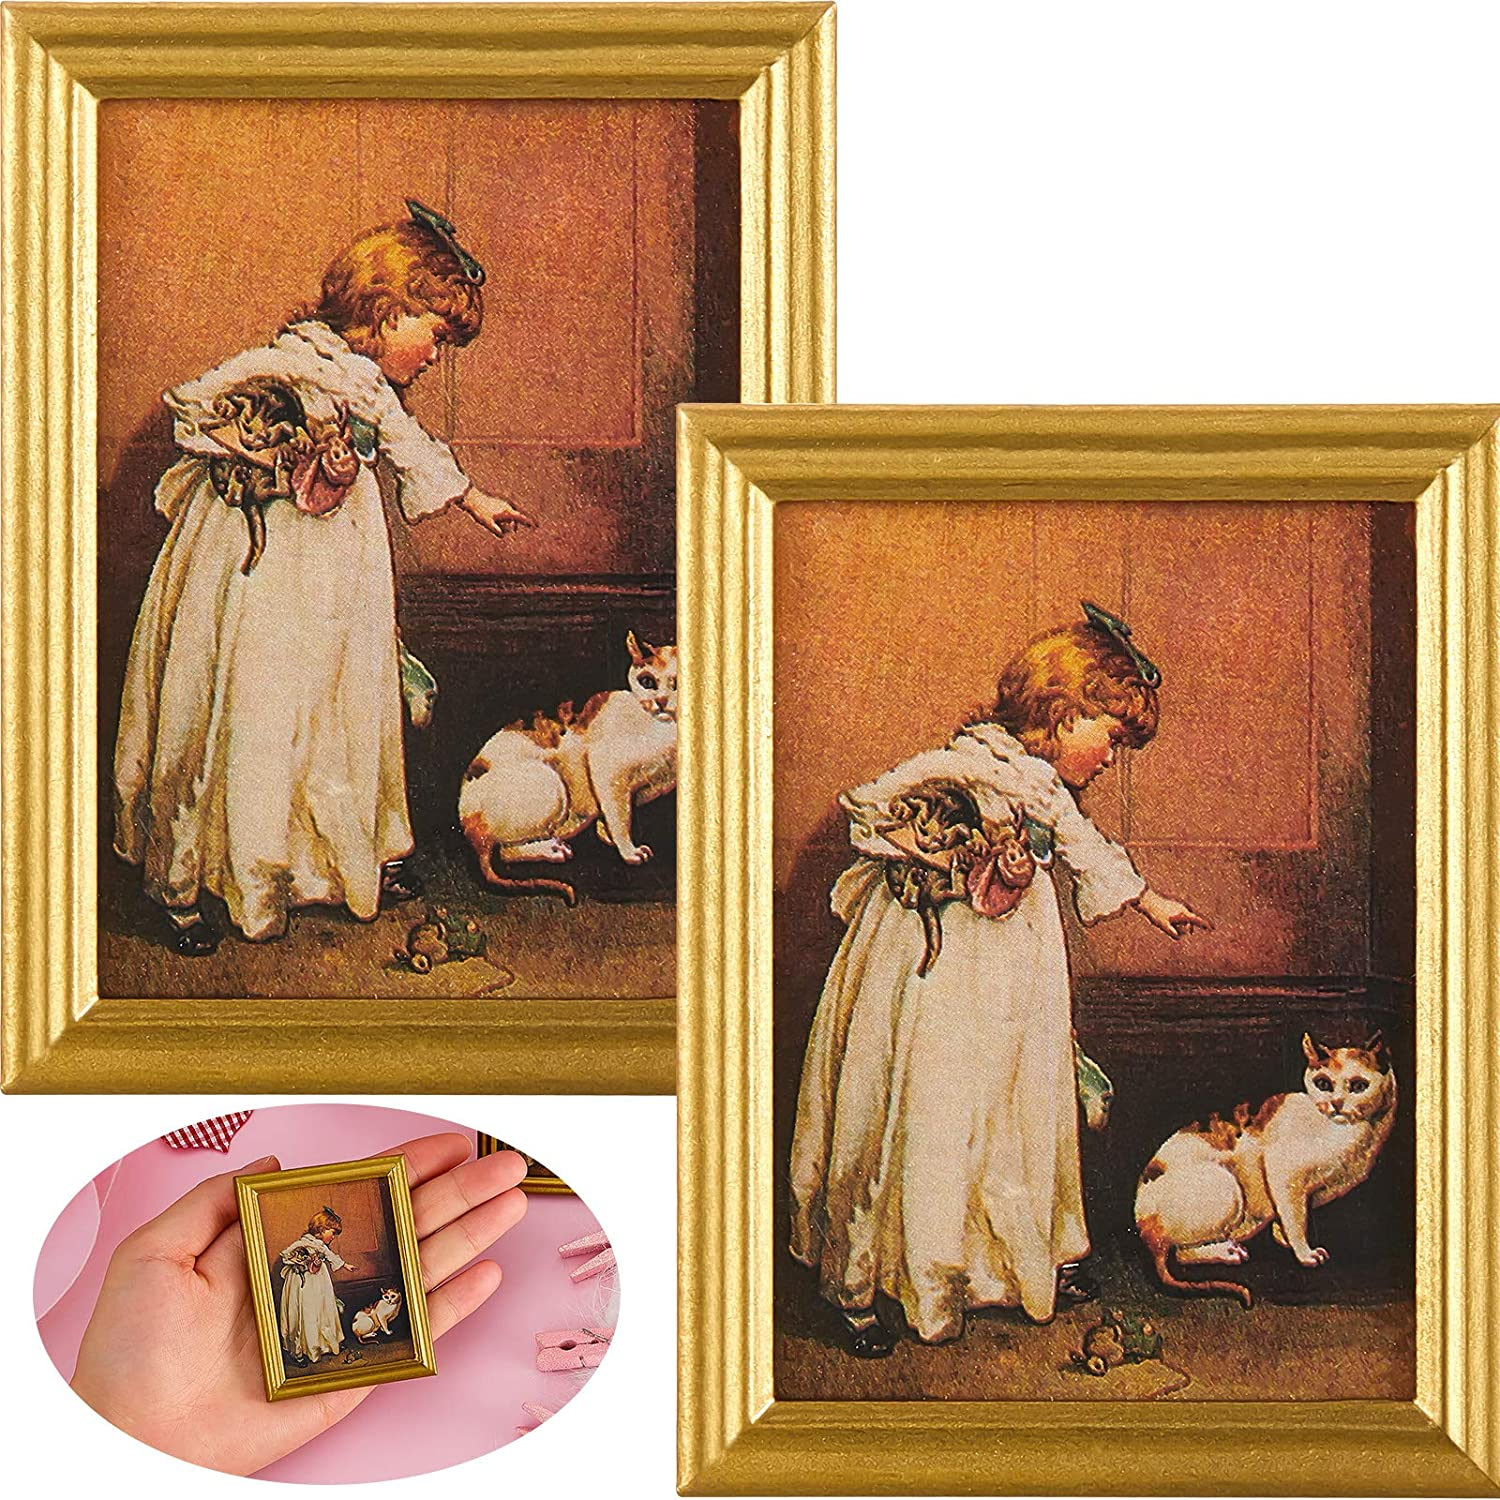 Skylety 2 Pieces Dollhouse Decoration Accessories 1:12 Dollhouse Miniature Painted Wooden Frame Mural Accessories Golden Plastic Frame Girl and Cat Oil Painting Miniature Dollhouse Furniture